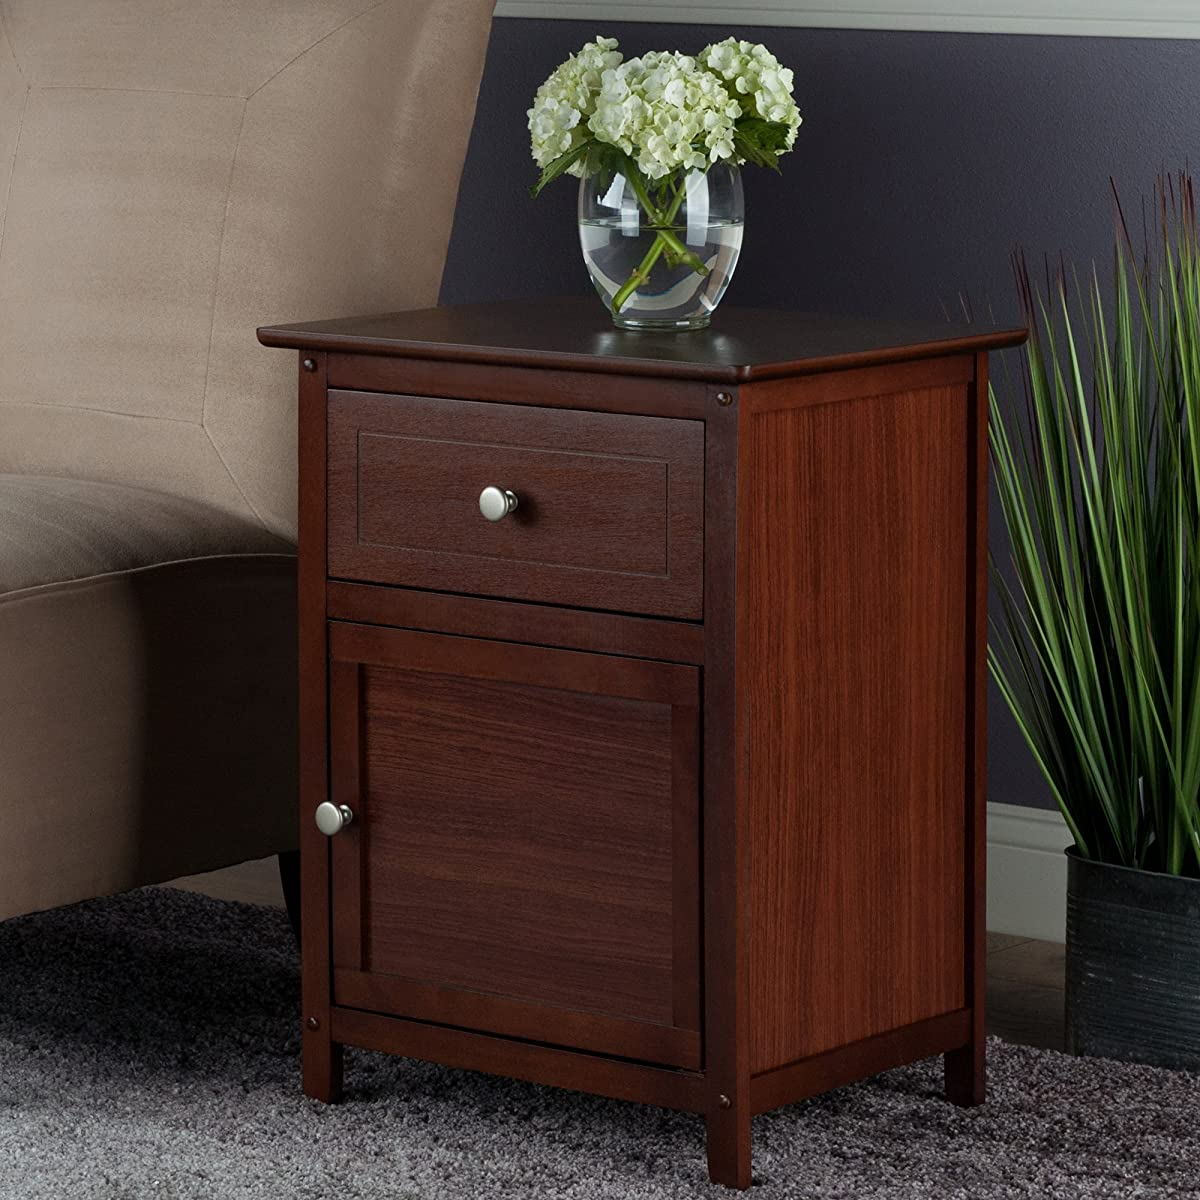 Winsome wood night stand accent table with drawer and